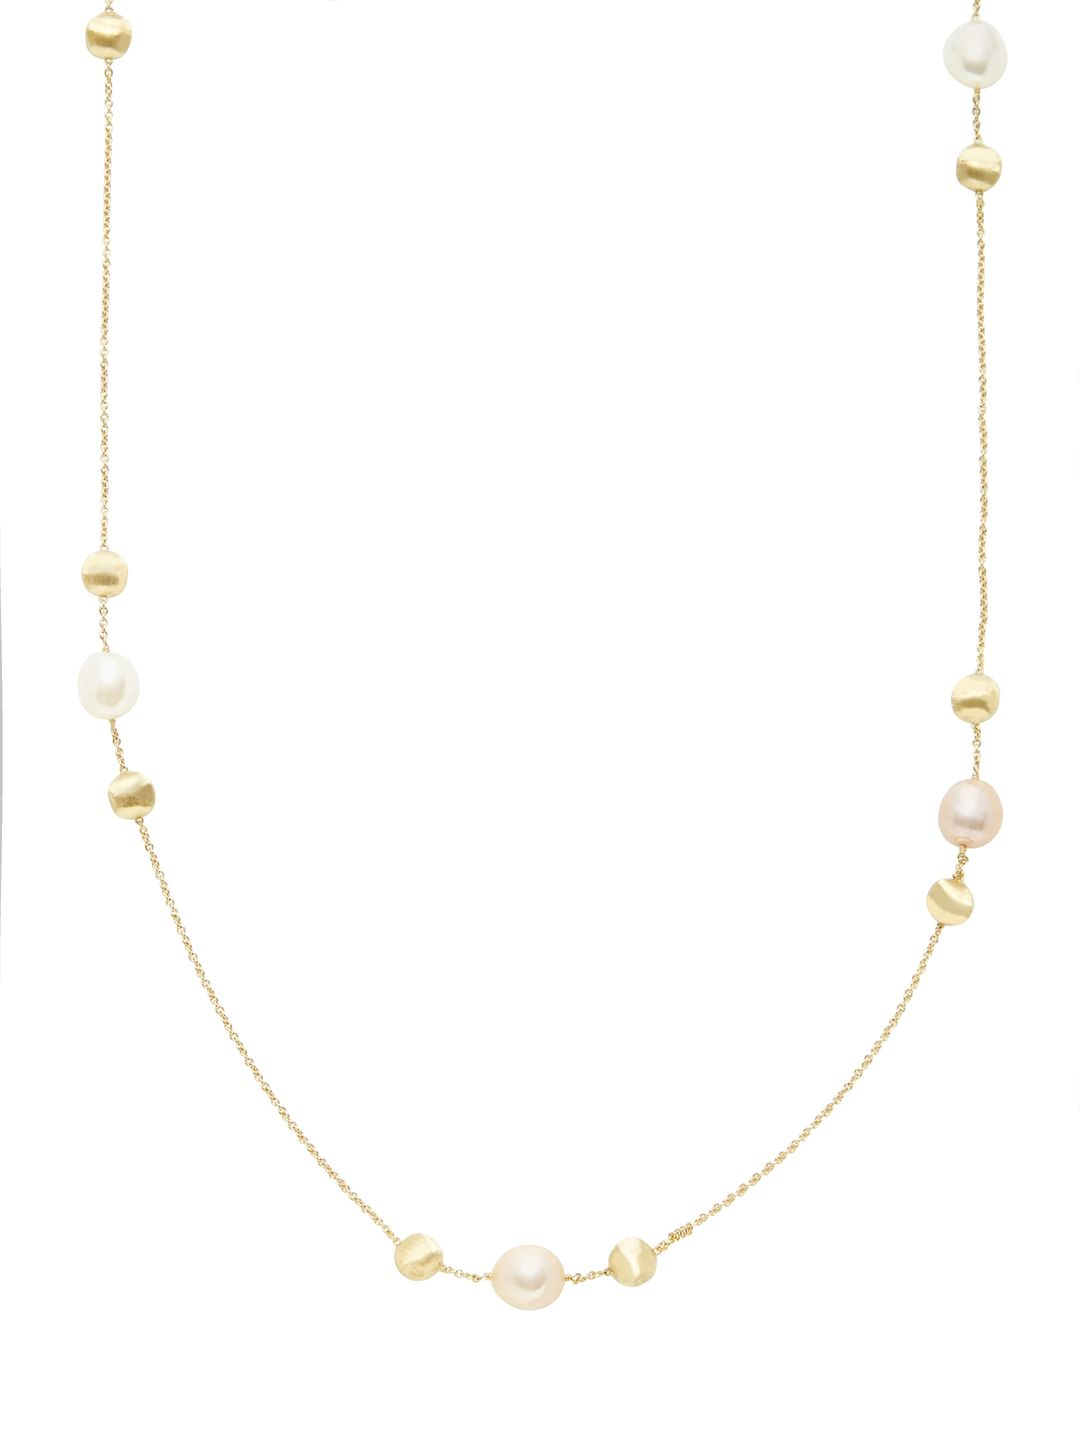 Africa Freshwater Pearl Station Necklace